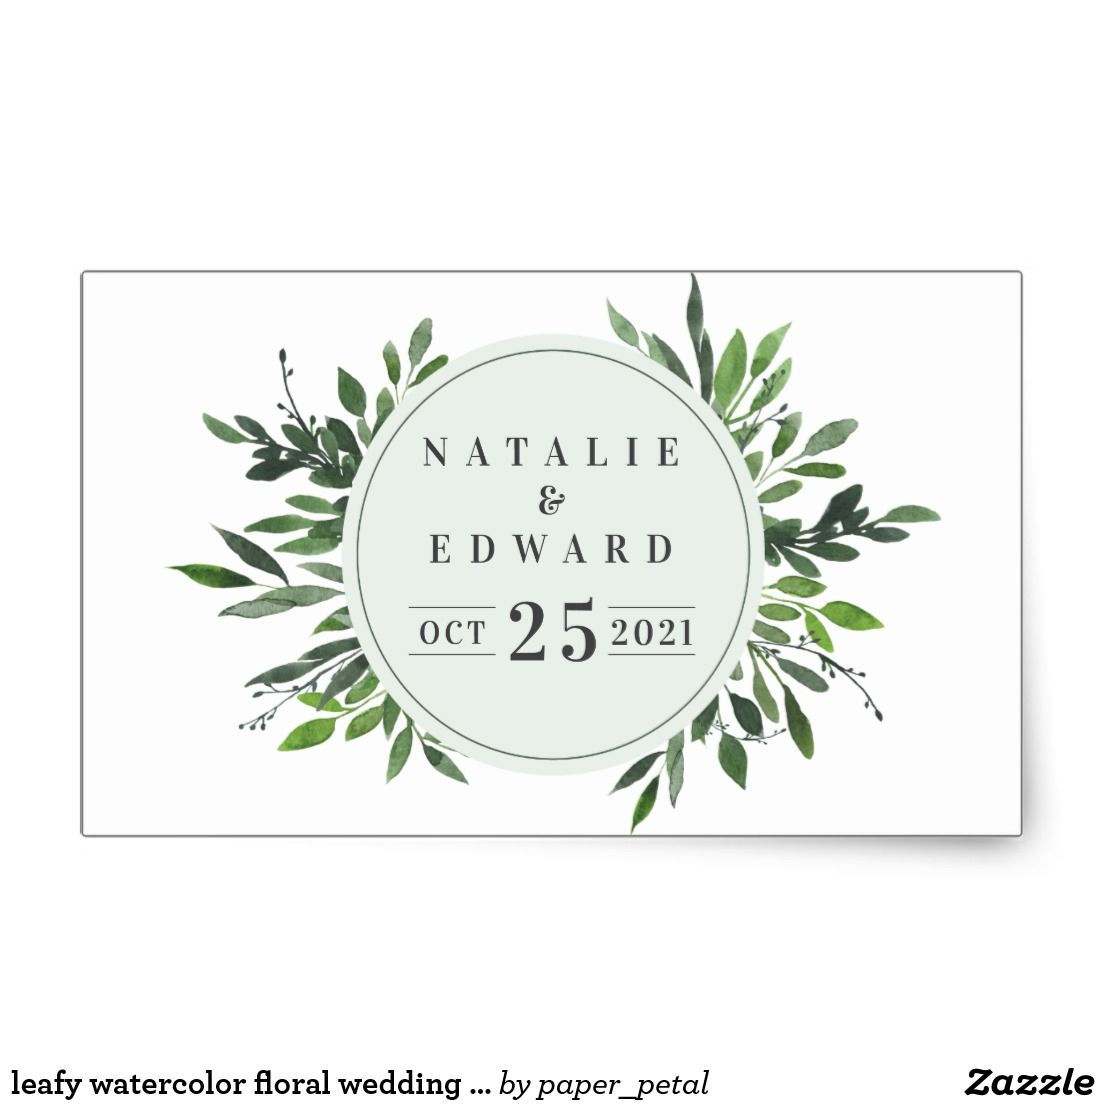 Leafy Watercolor Floral Wedding Name Stickers Leafy Watercolor